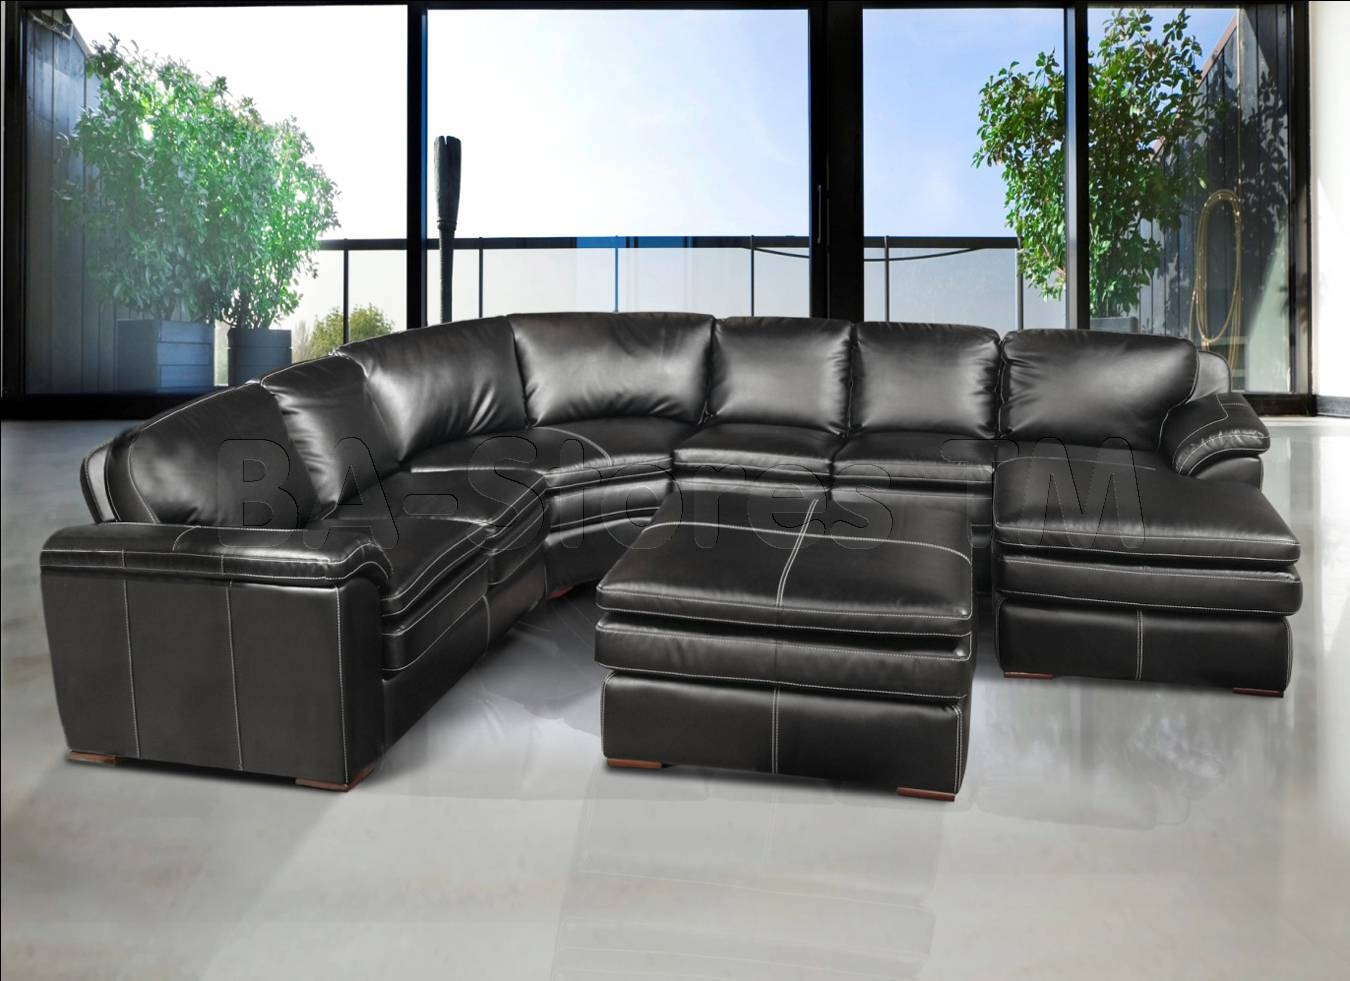 Fresh Grey Leather Sectional Couch 83 Contemporary Sofa inside Charcoal Grey Leather Sofas (Image 5 of 15)